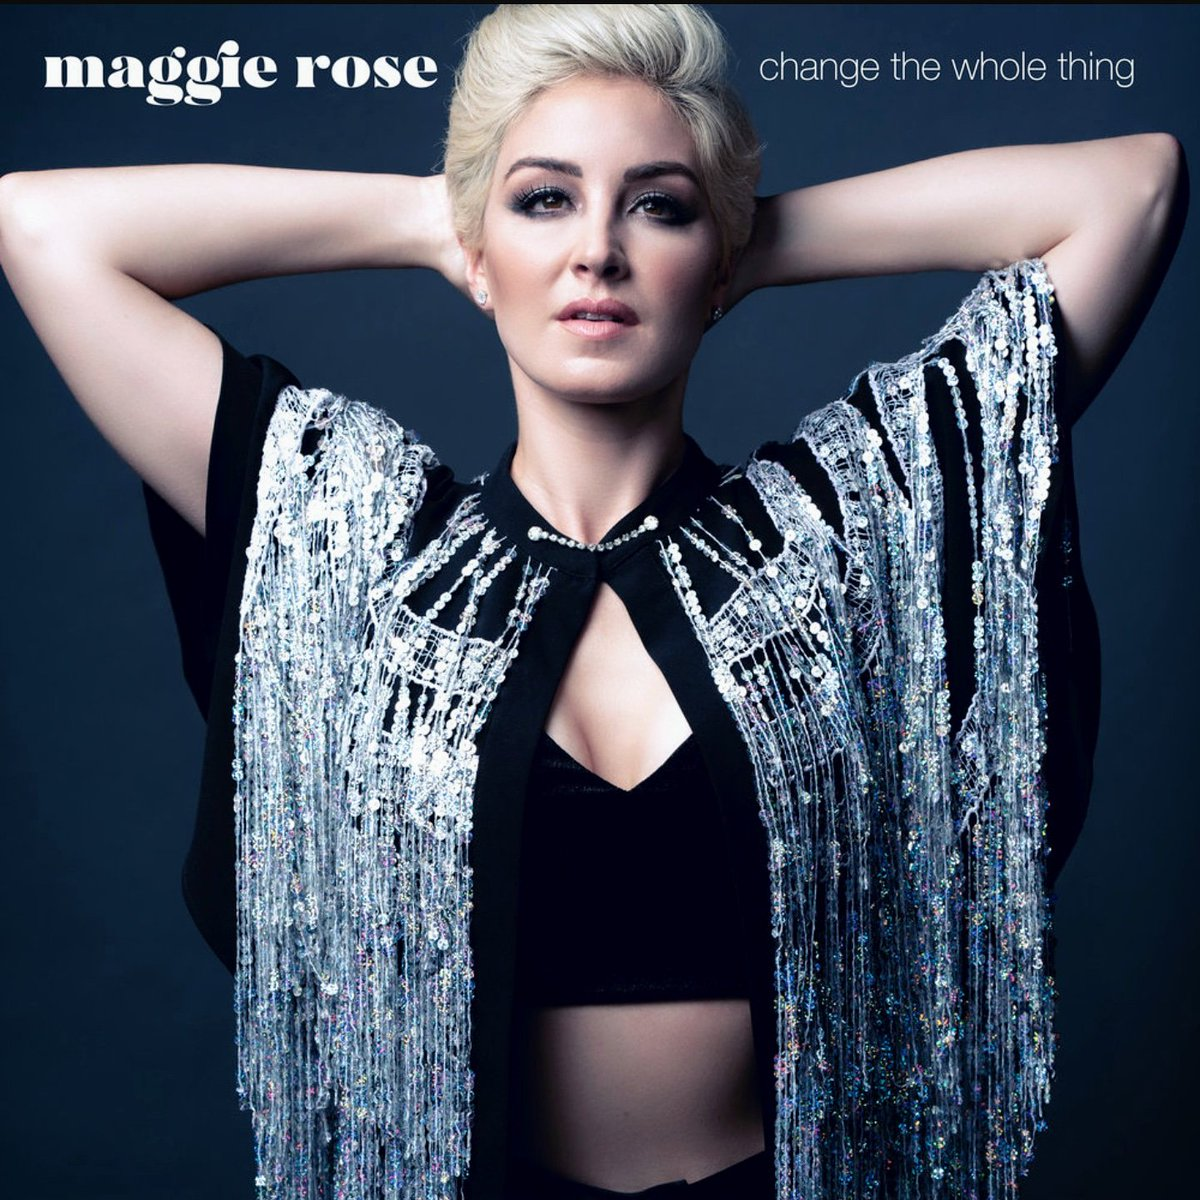 Congrats to my friend @IAmMaggieRose and the entire band! What an amazing album. Available on all formats! Everyone download it and add this to your Playlist. #changethewholething #maggierose<br>http://pic.twitter.com/3XDWNTuyM0